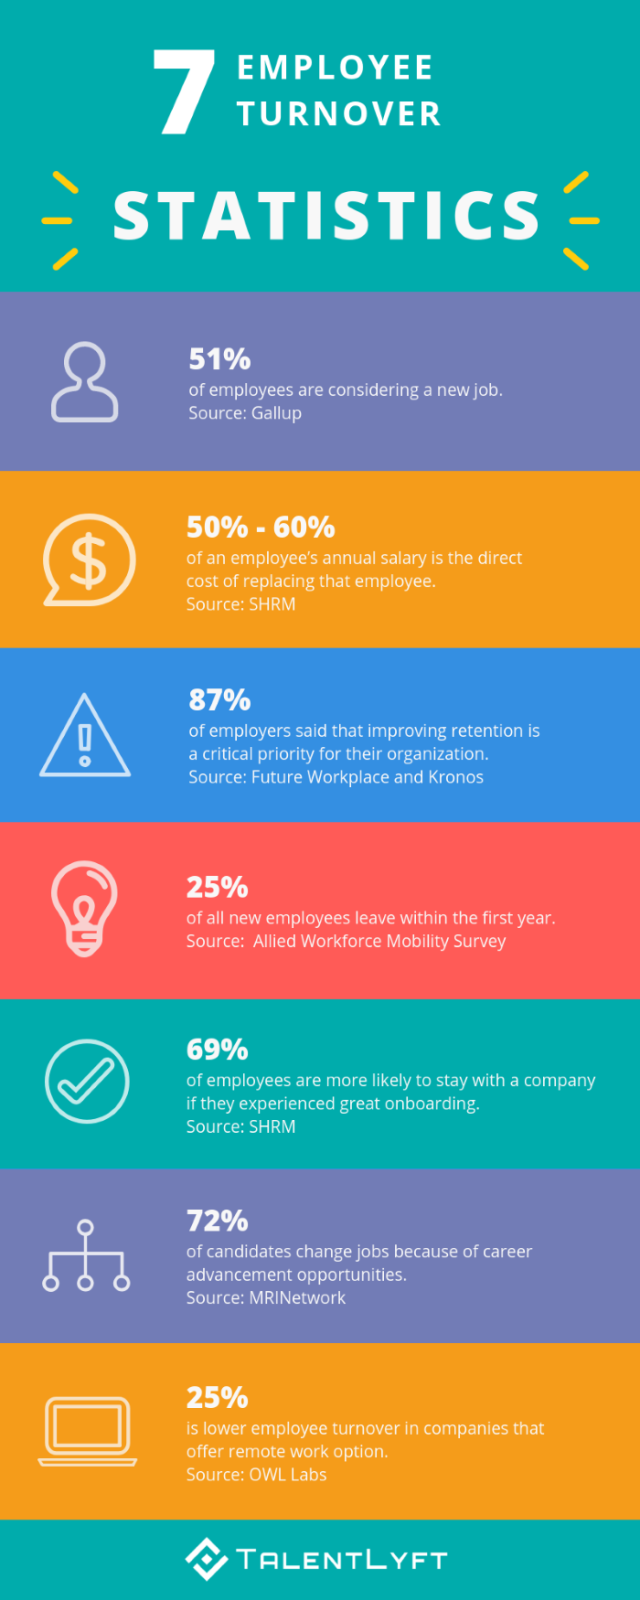 Employee-turnover-statistics-infographic.png